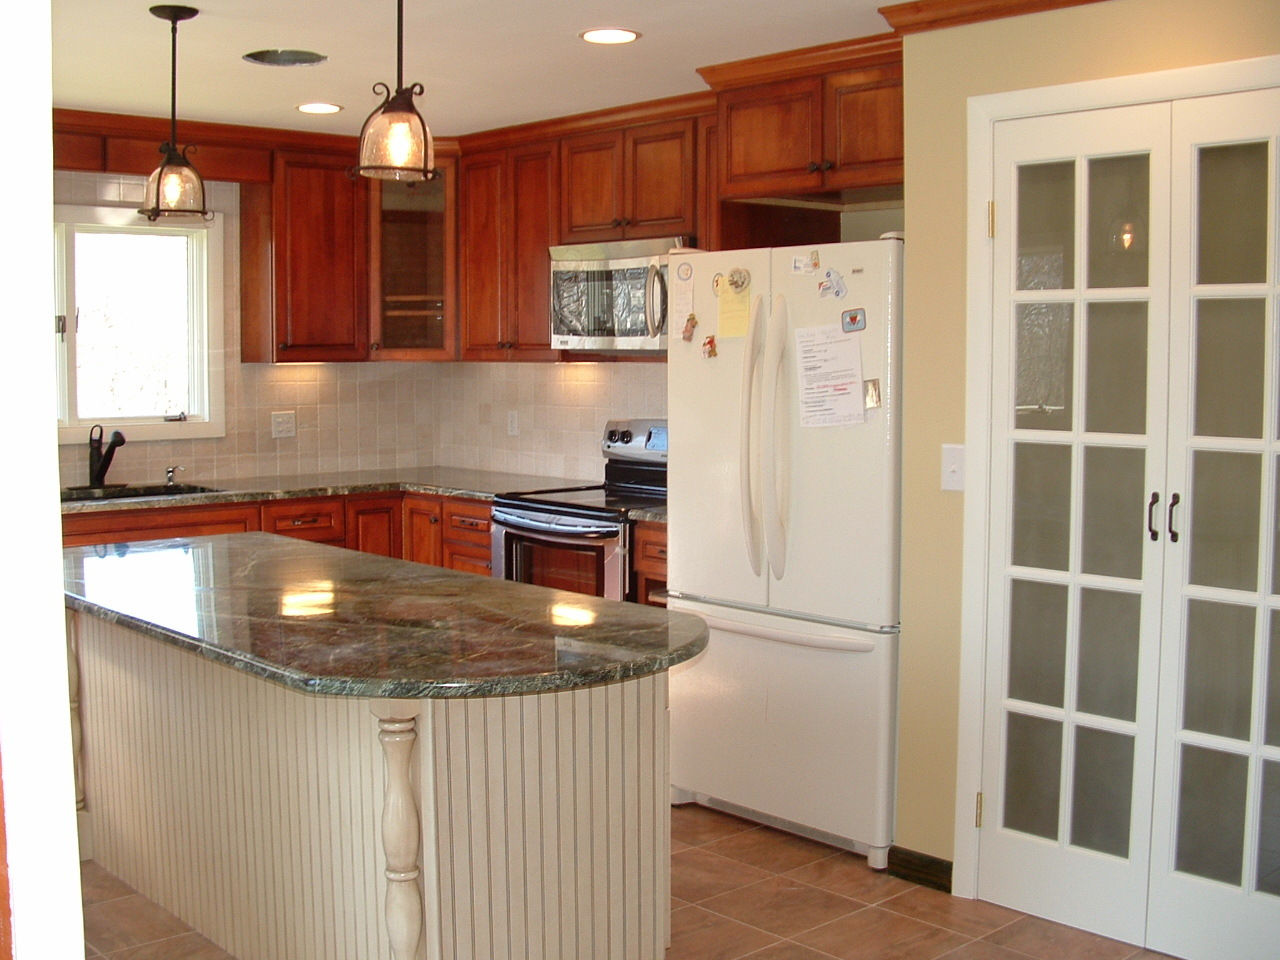 Wix.com 2nd Generation Remodeling created by mmanni95 based on ...